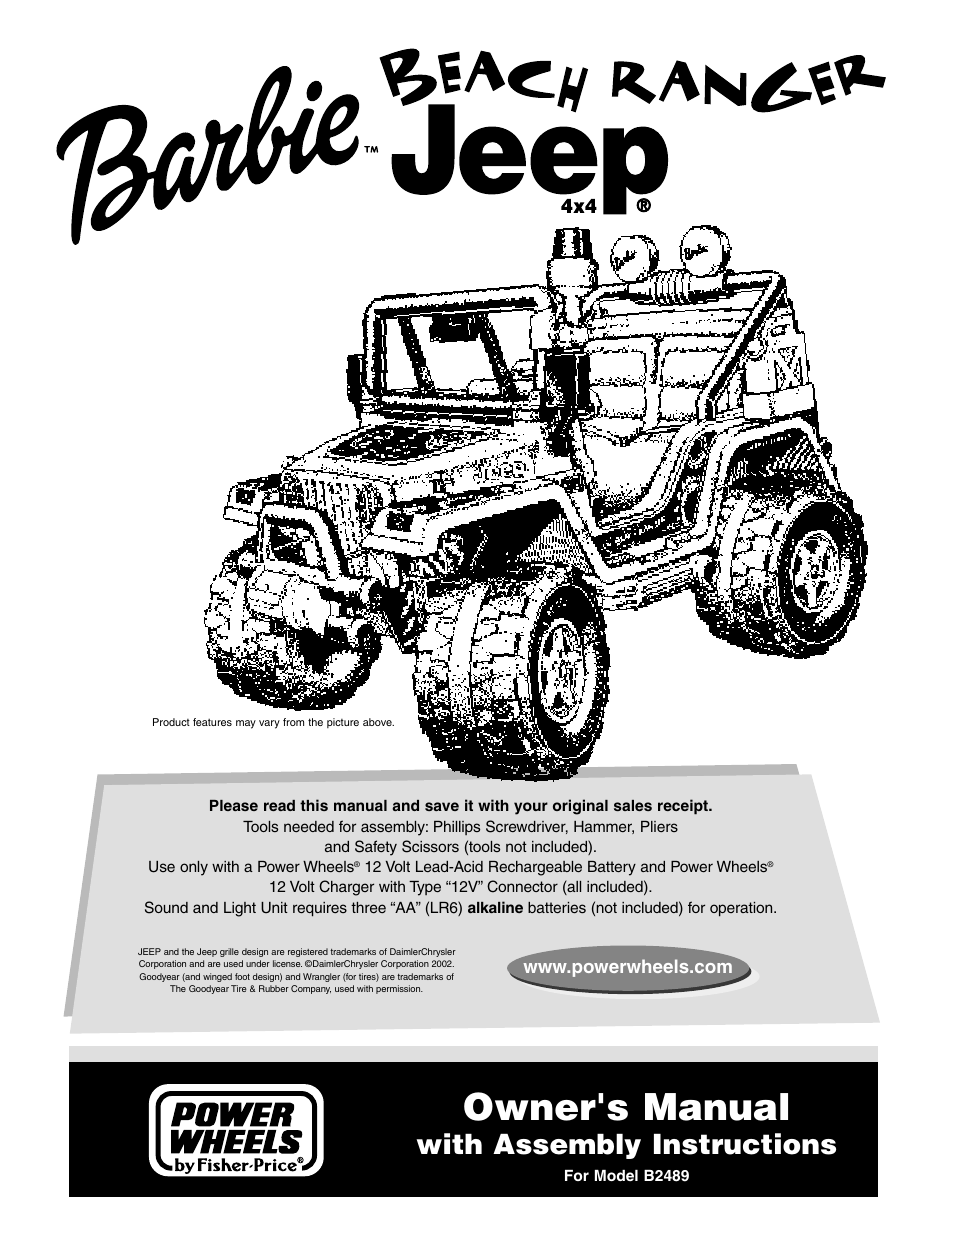 Fisher Price Barbie Jeep B2489 User Manual 36 Pages